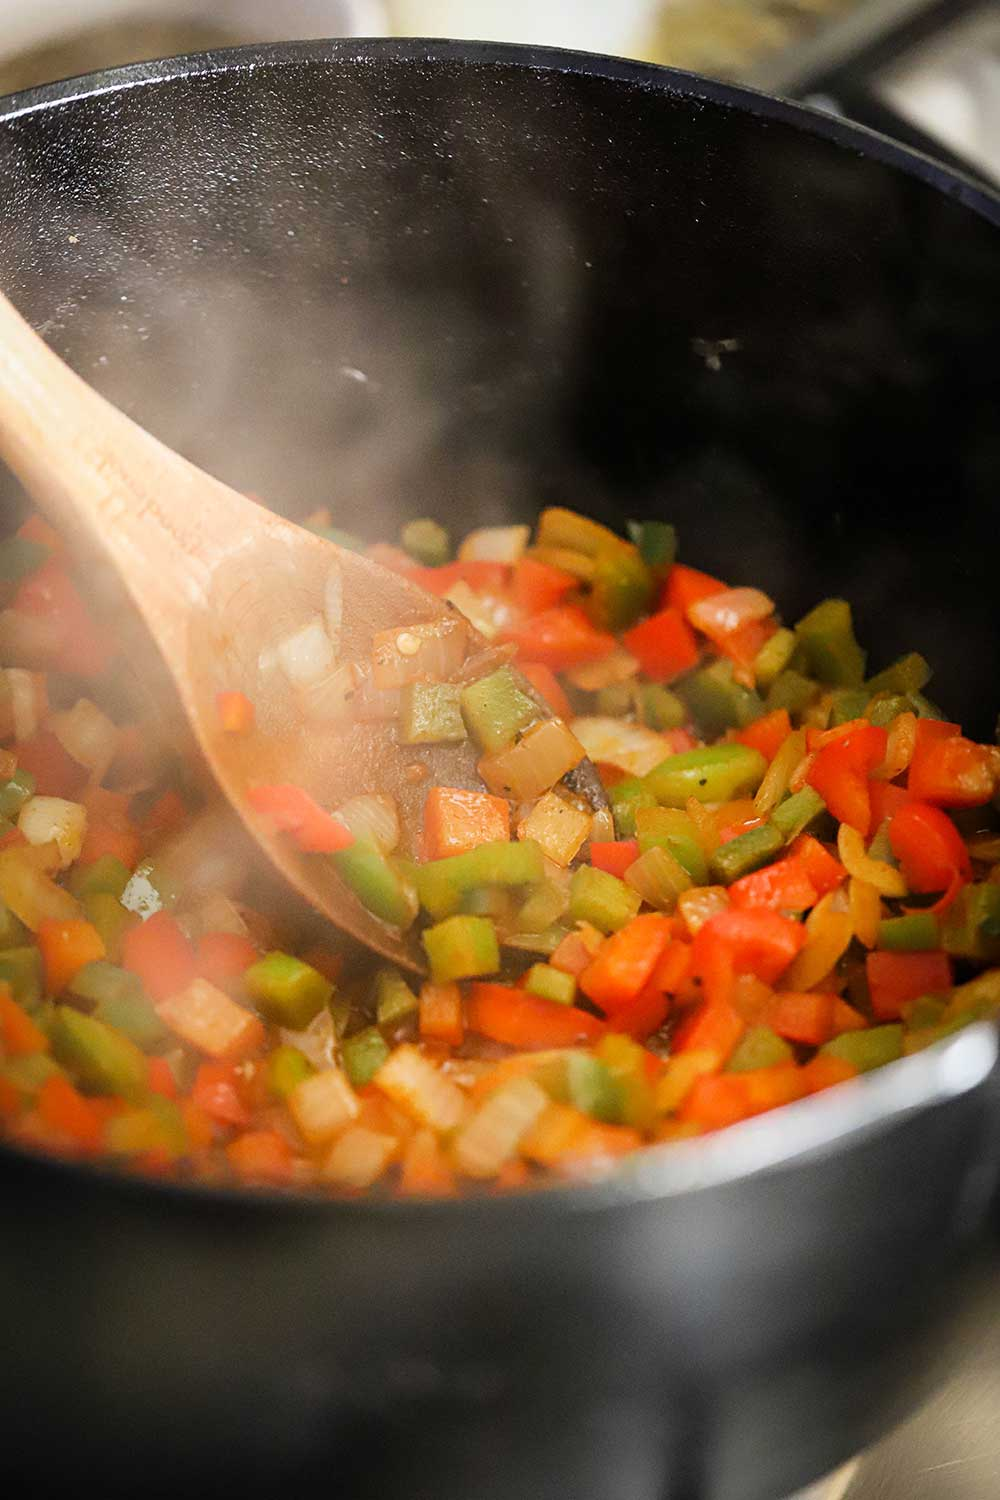 A large black cast-iron pot filled with chopped green and red peppers simmering with a large wooden spoon stirring it all.